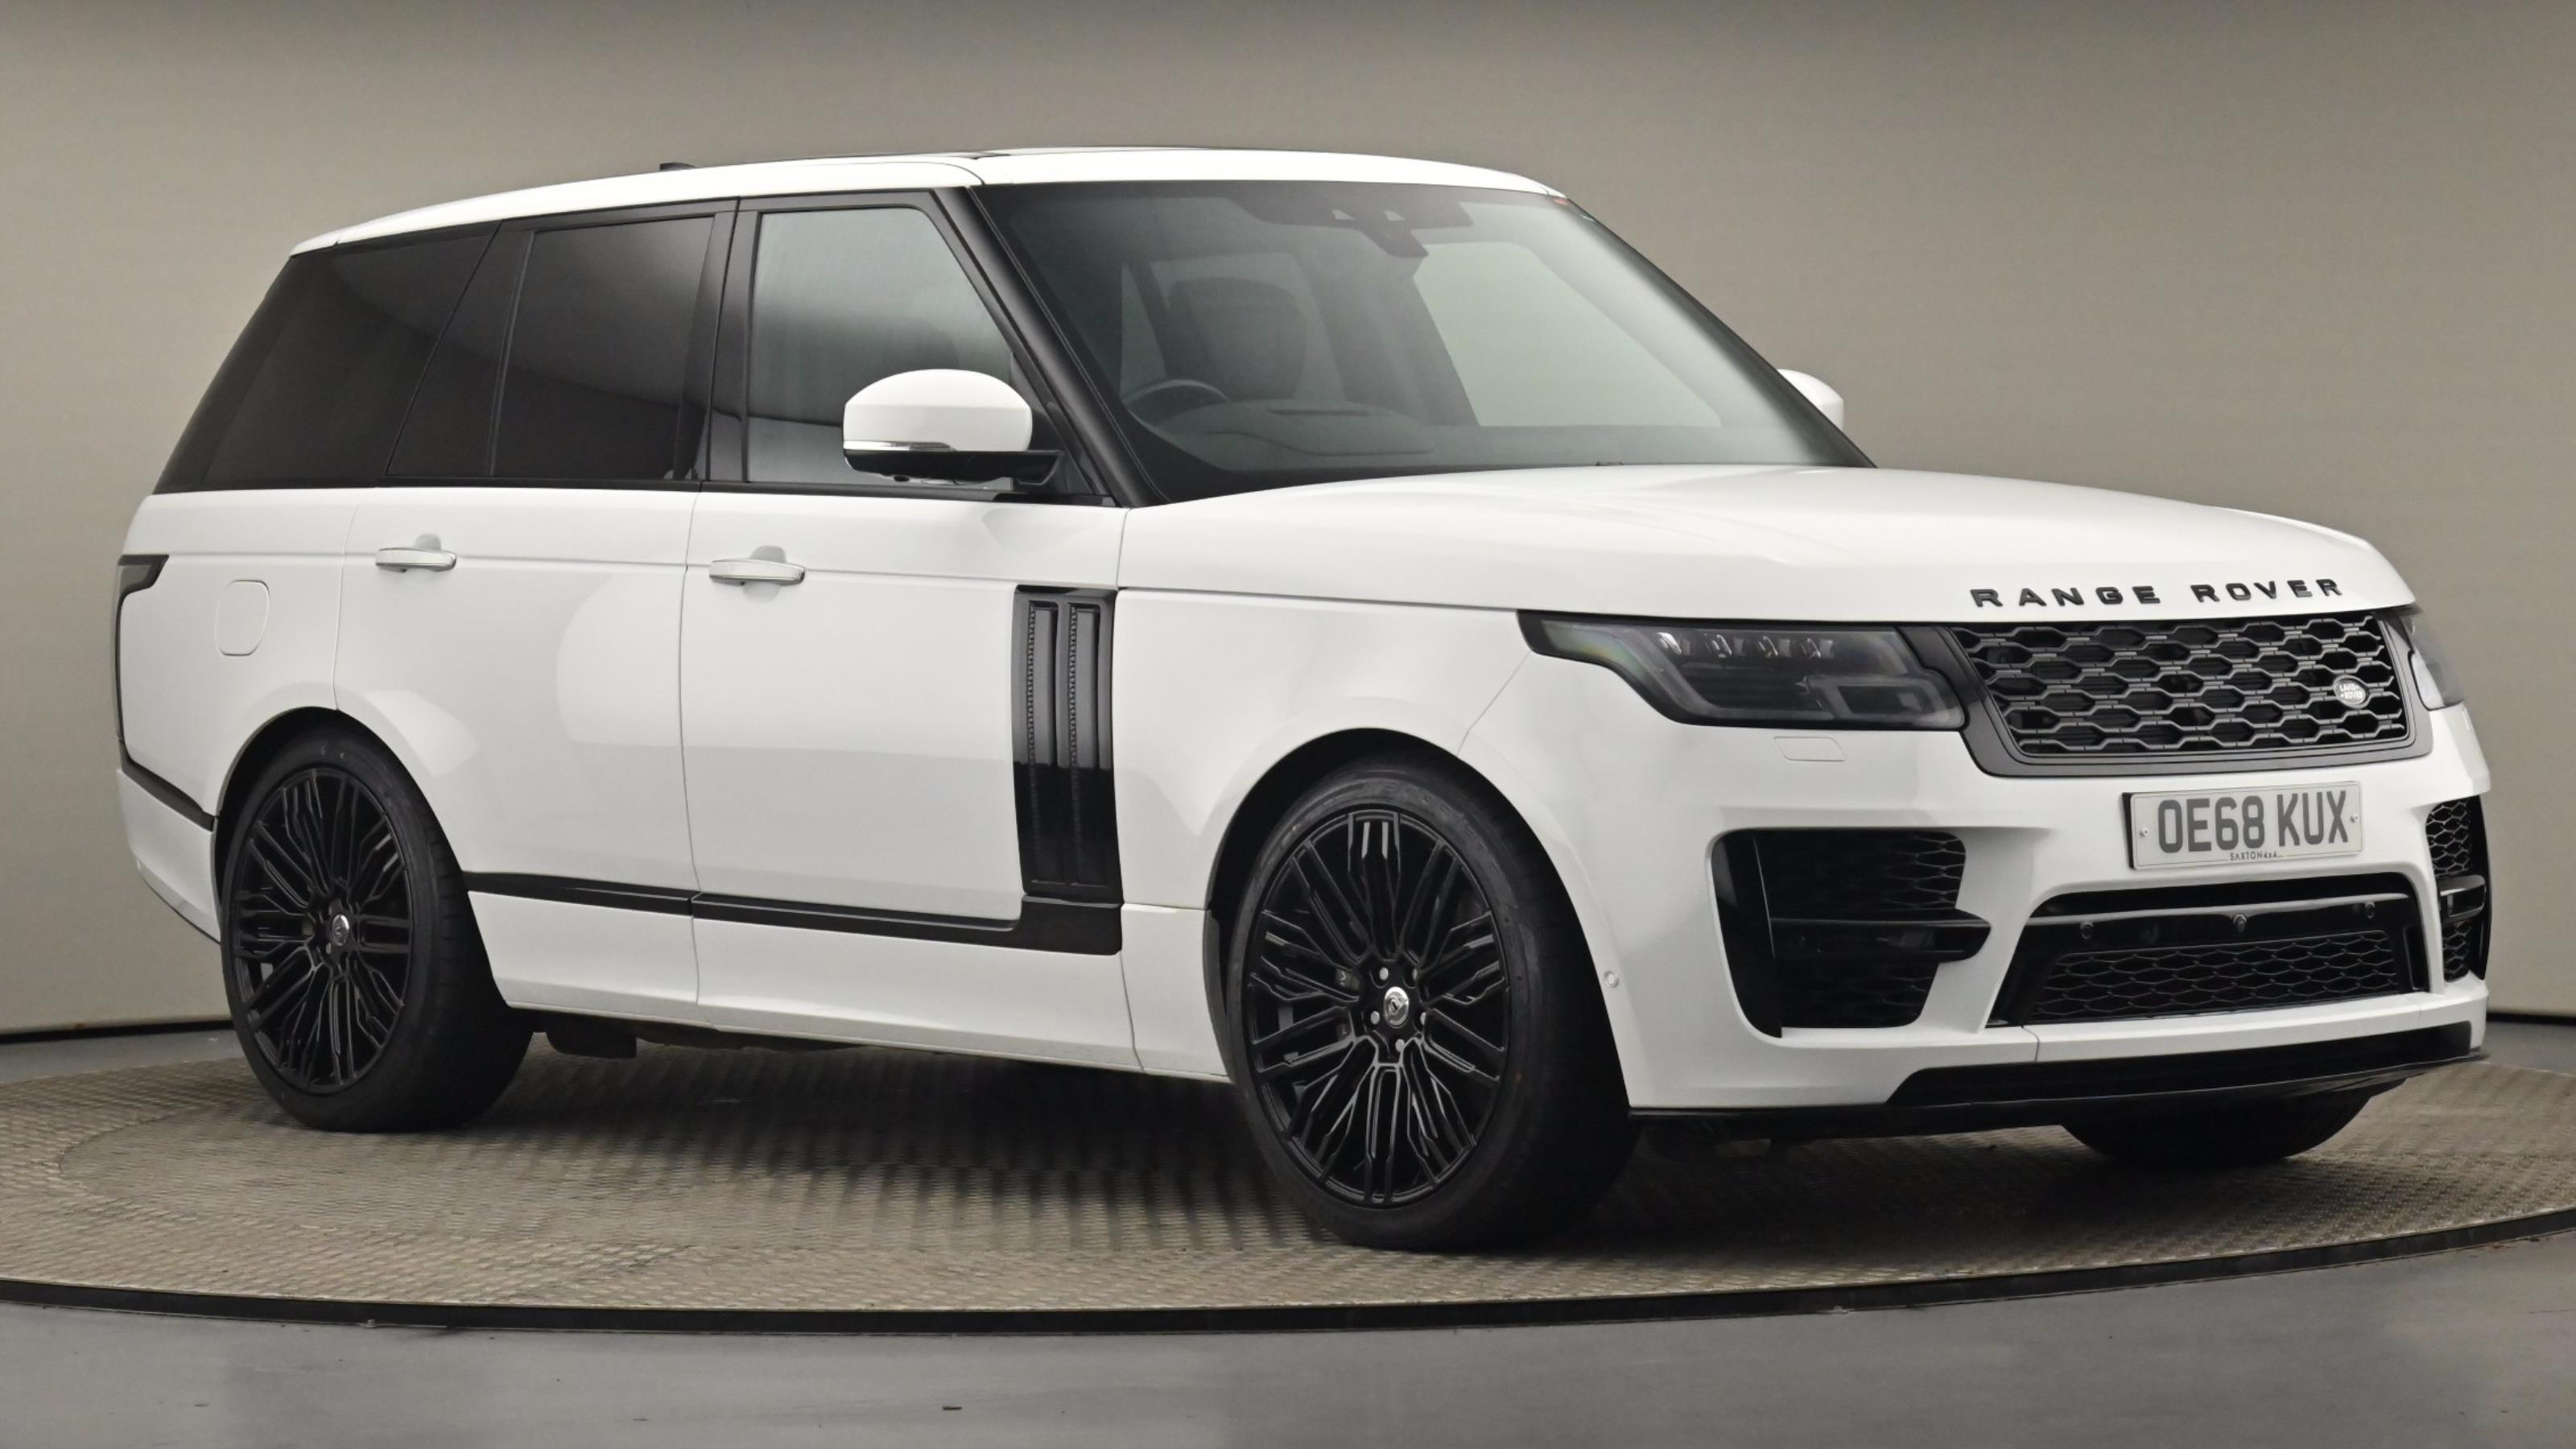 Used 2018 Land Rover RANGE ROVER 4.4 SDV8 Autobiography 4dr Auto at Saxton4x4